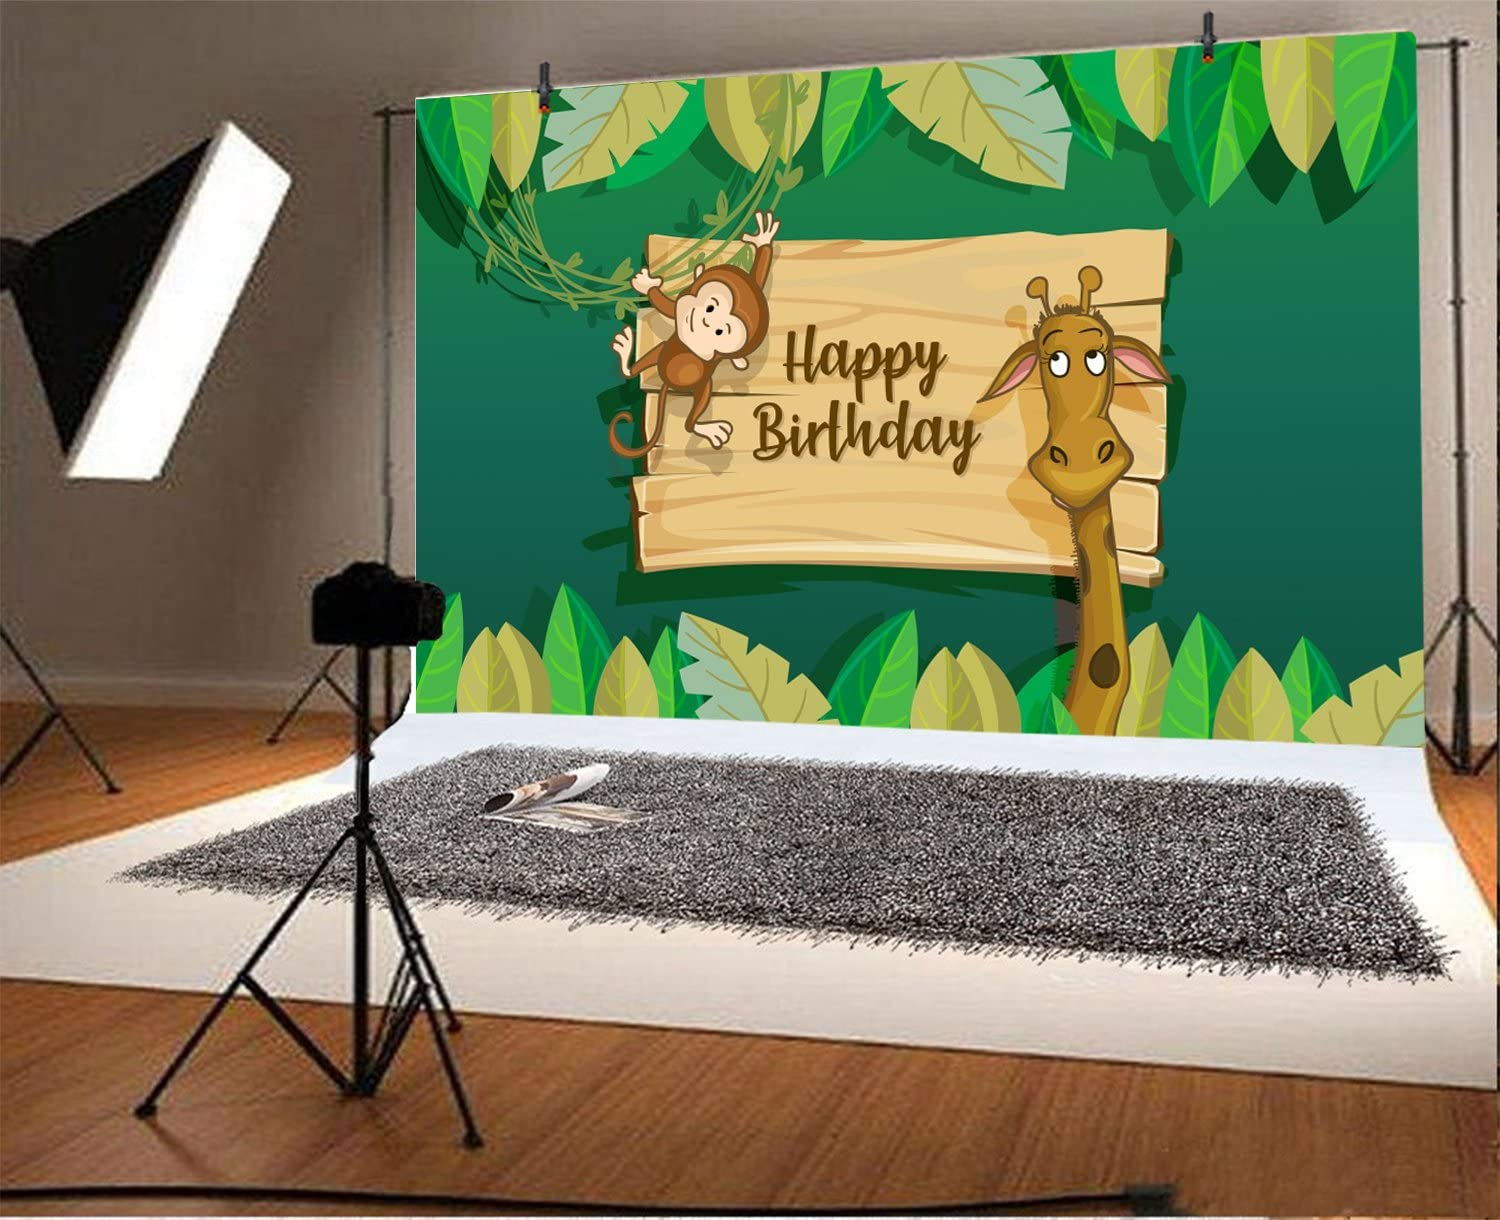 Studio LFEEY 5x3ft Happy Birthday Photography Backdrop Cartoon Wallpaper Green Leaves Kids Children Party Banner Giraffe Monkey Background for Photos,Booth